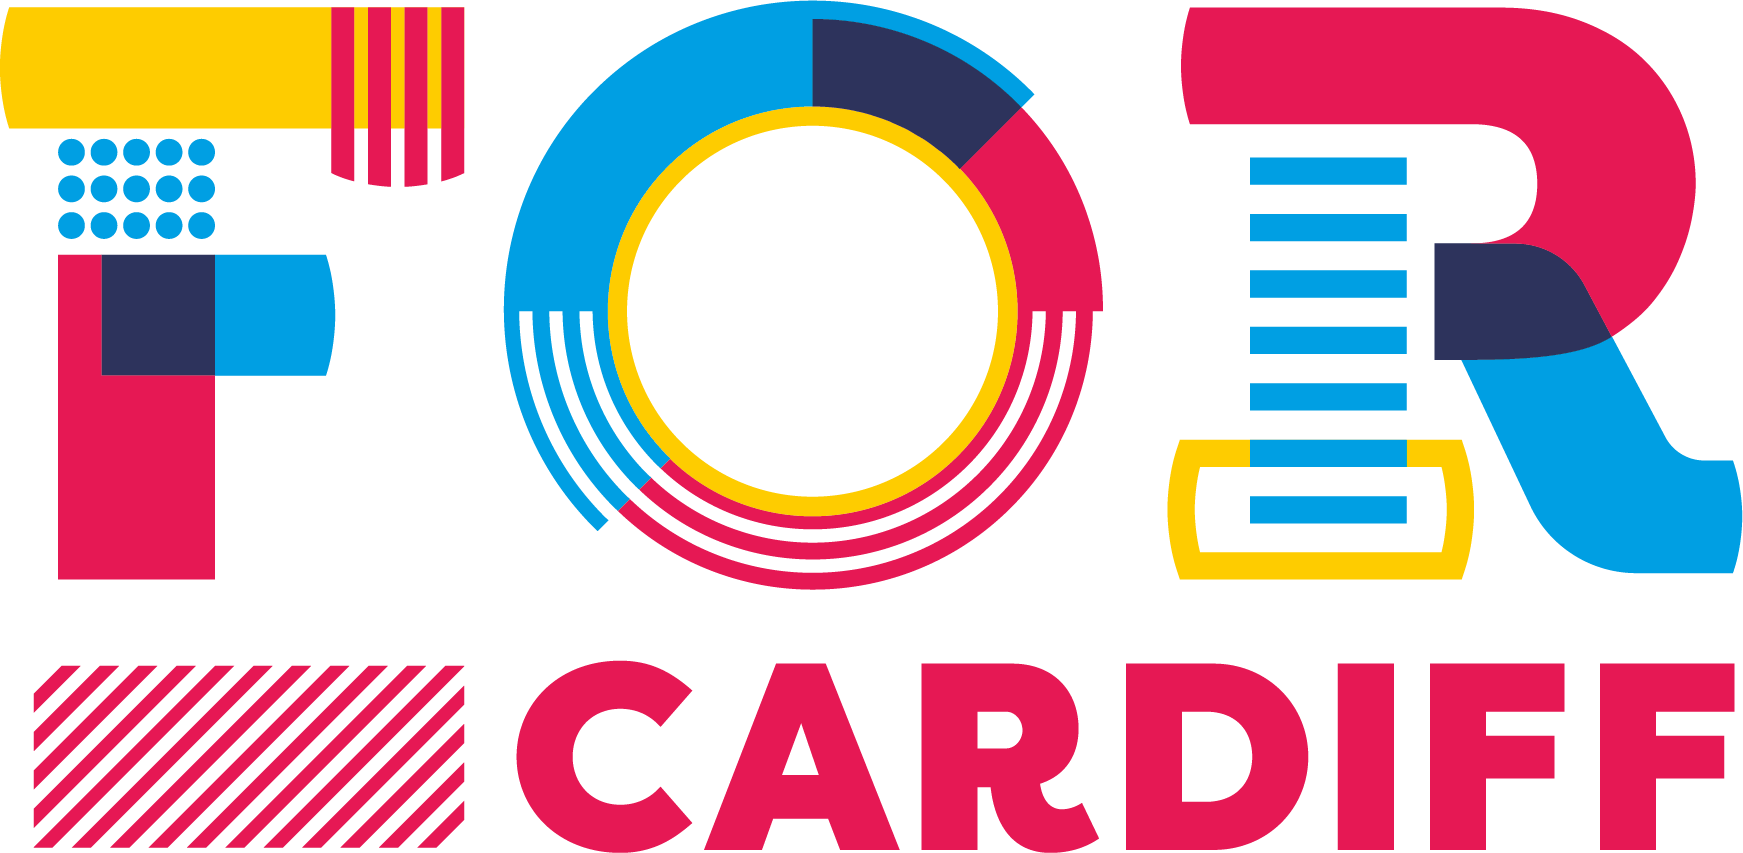 A Gift Card FOR Cardiff